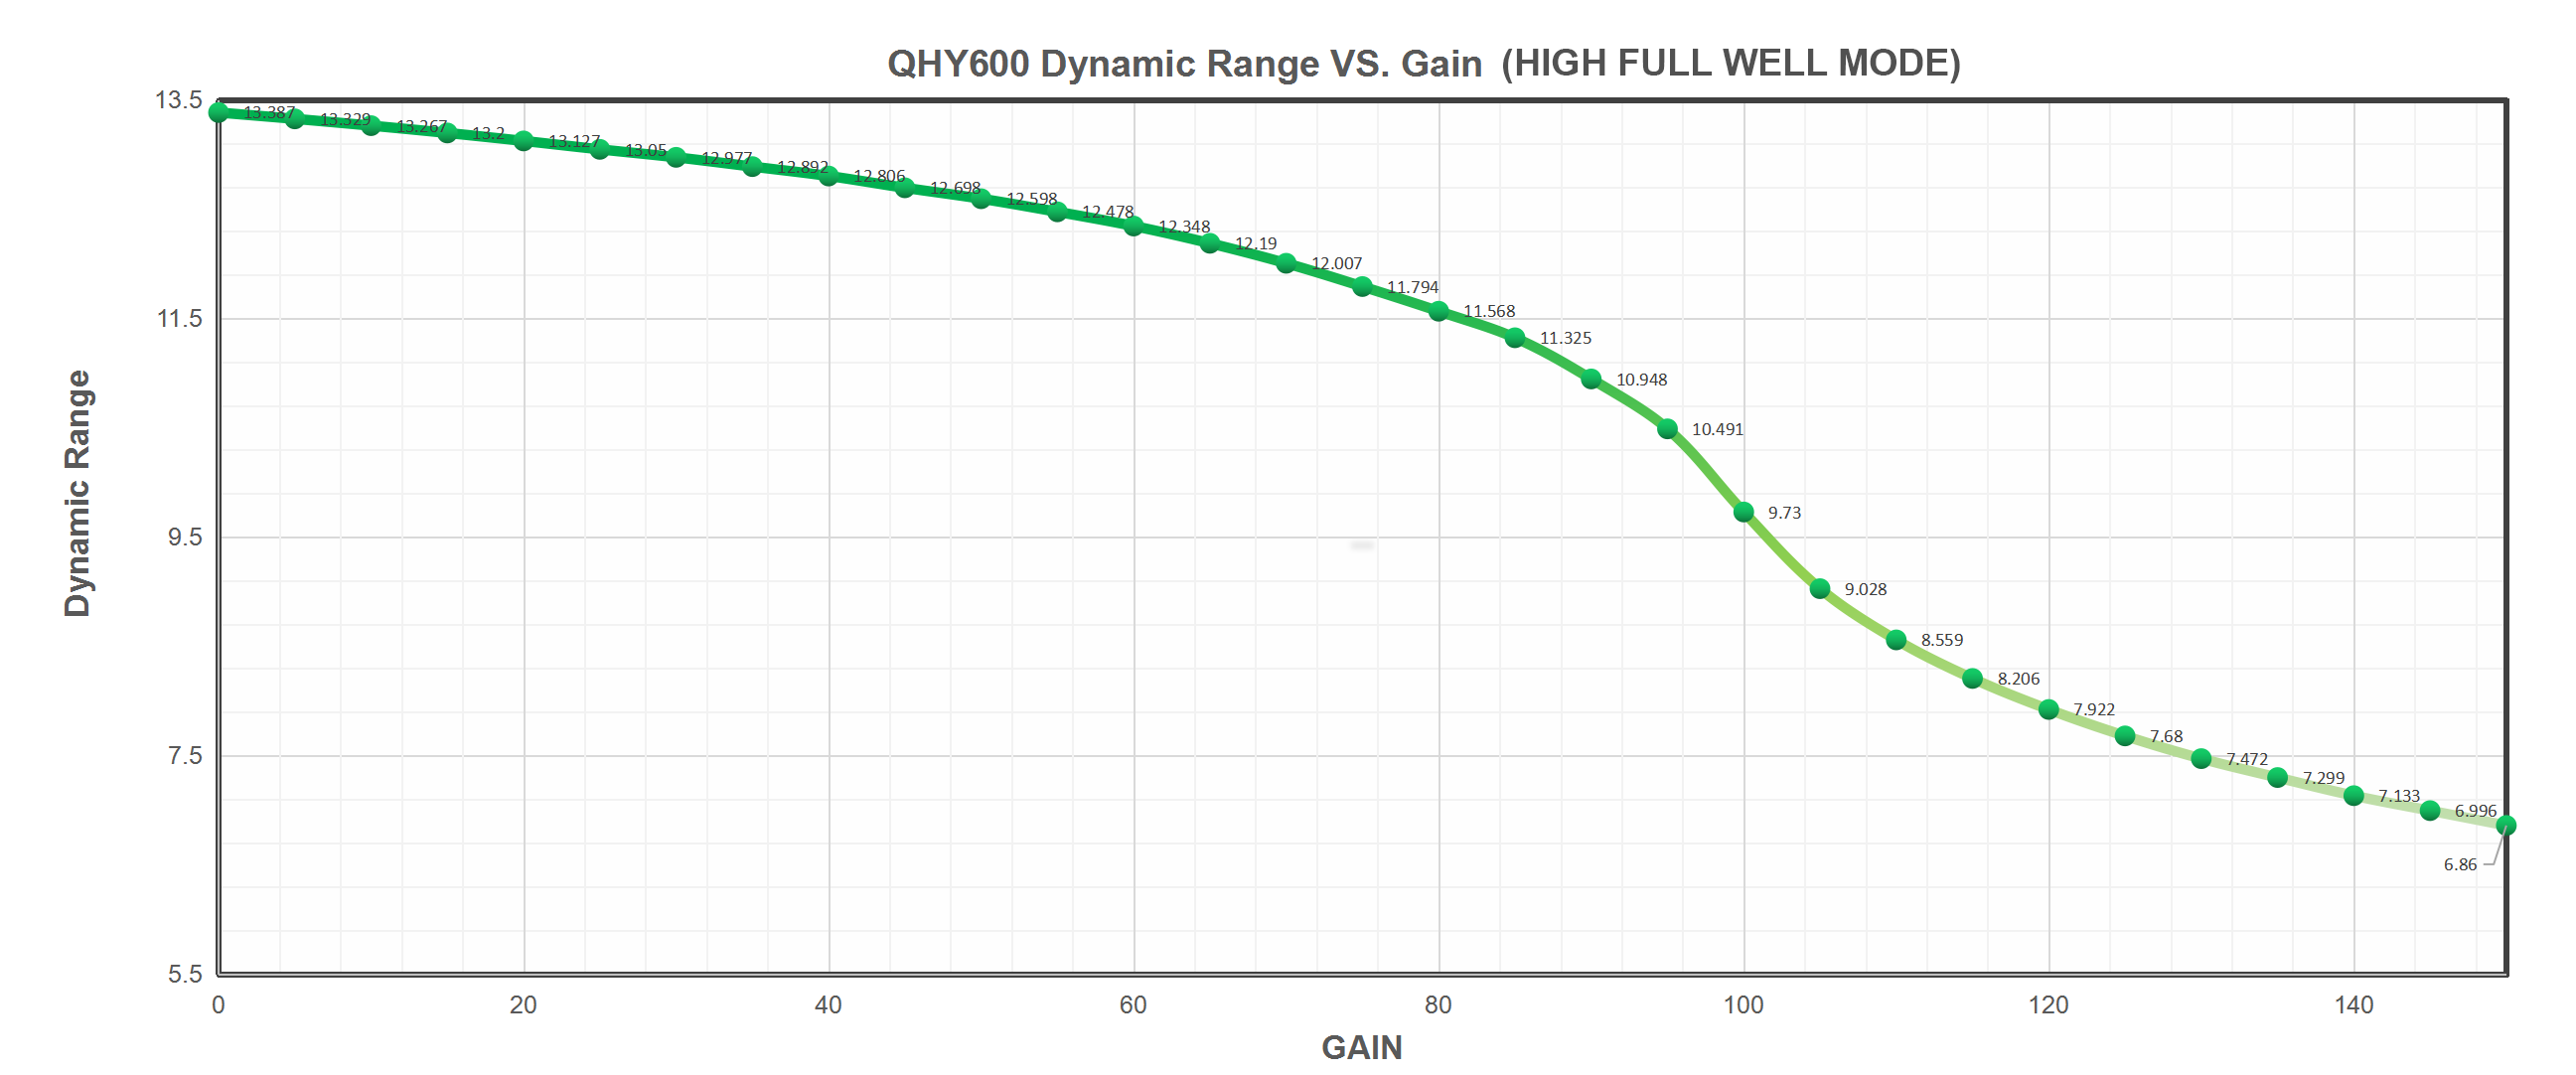 QHY600 Dynamic Range VS. Gain (High Full Well Mode)